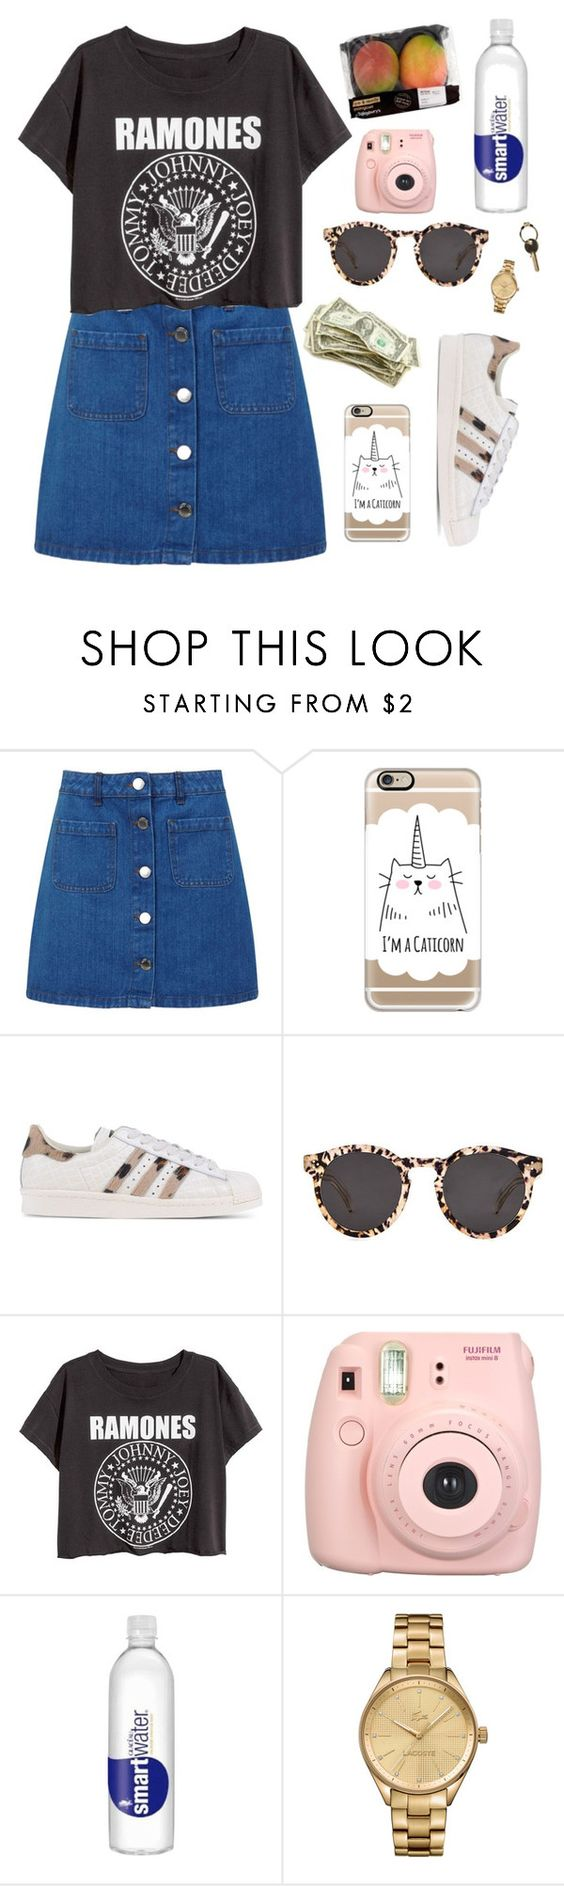 """""""Sin título #564"""" by mary-nava ❤ liked on Polyvore featuring Miss Selfridge, Casetify, adidas Originals, Illesteva, Fujifilm, Lacoste and Maison Margiela"""